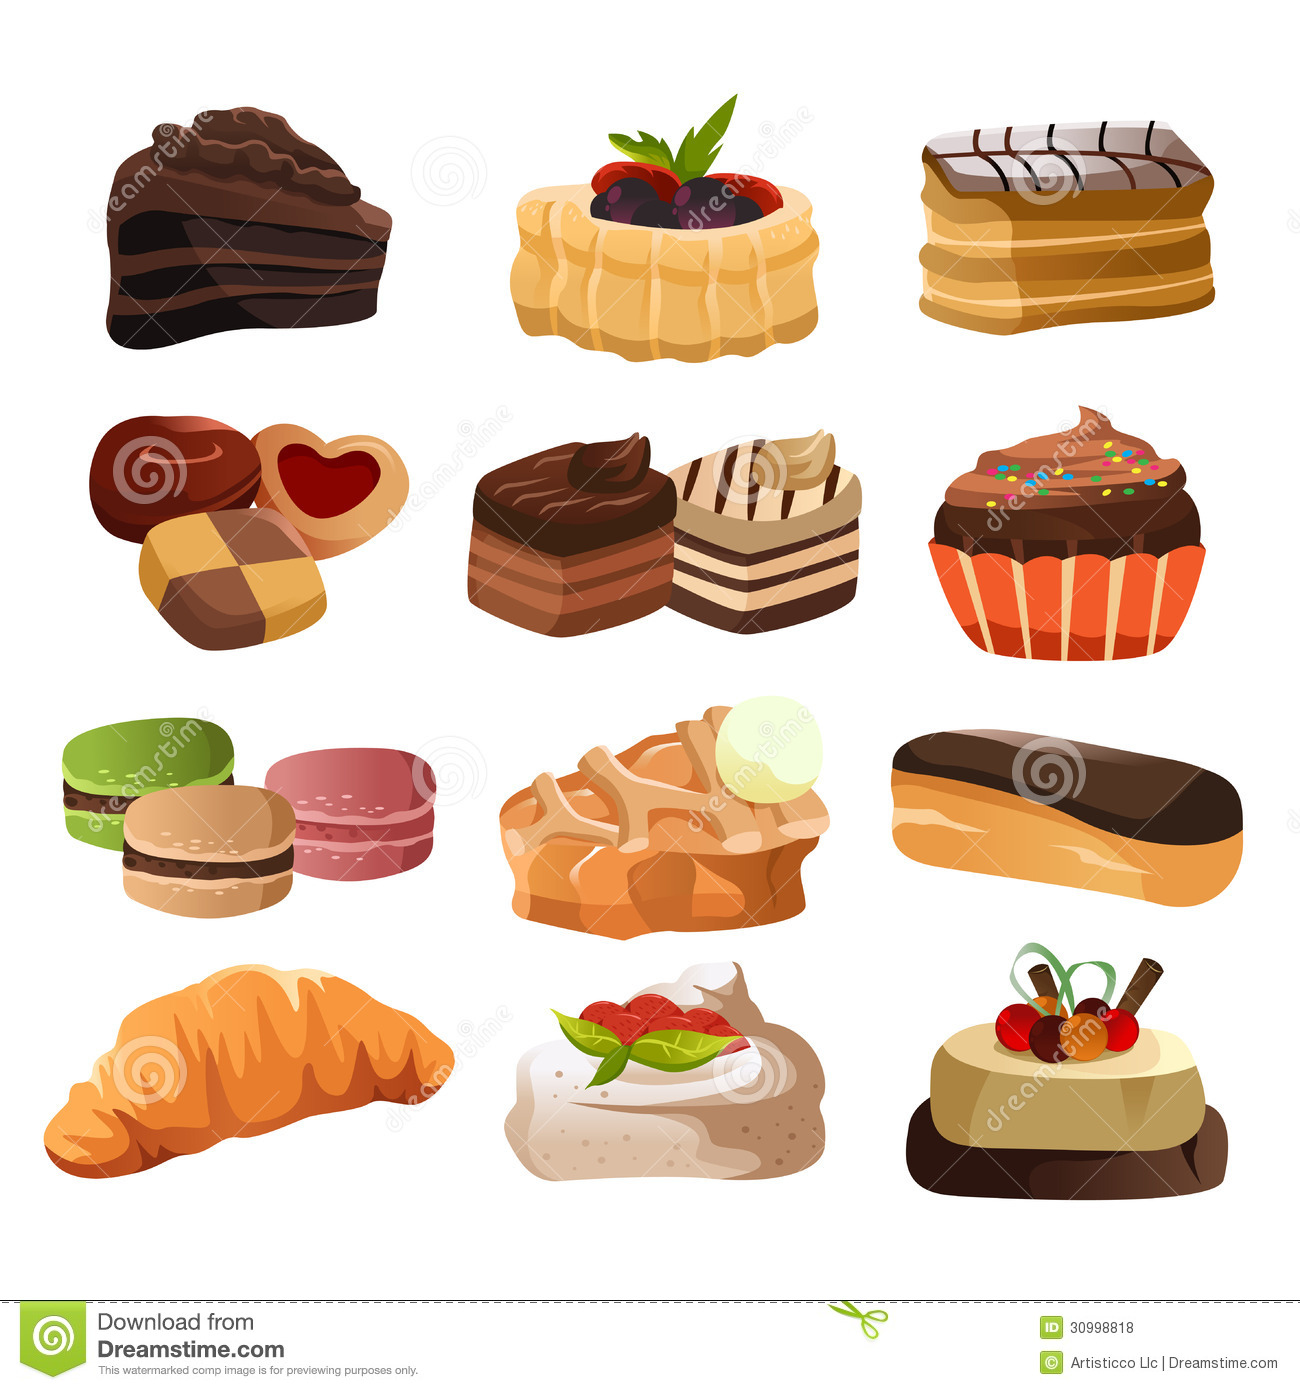 Pastry clipart hat Cliparts Pastry Clipart Free Pastry